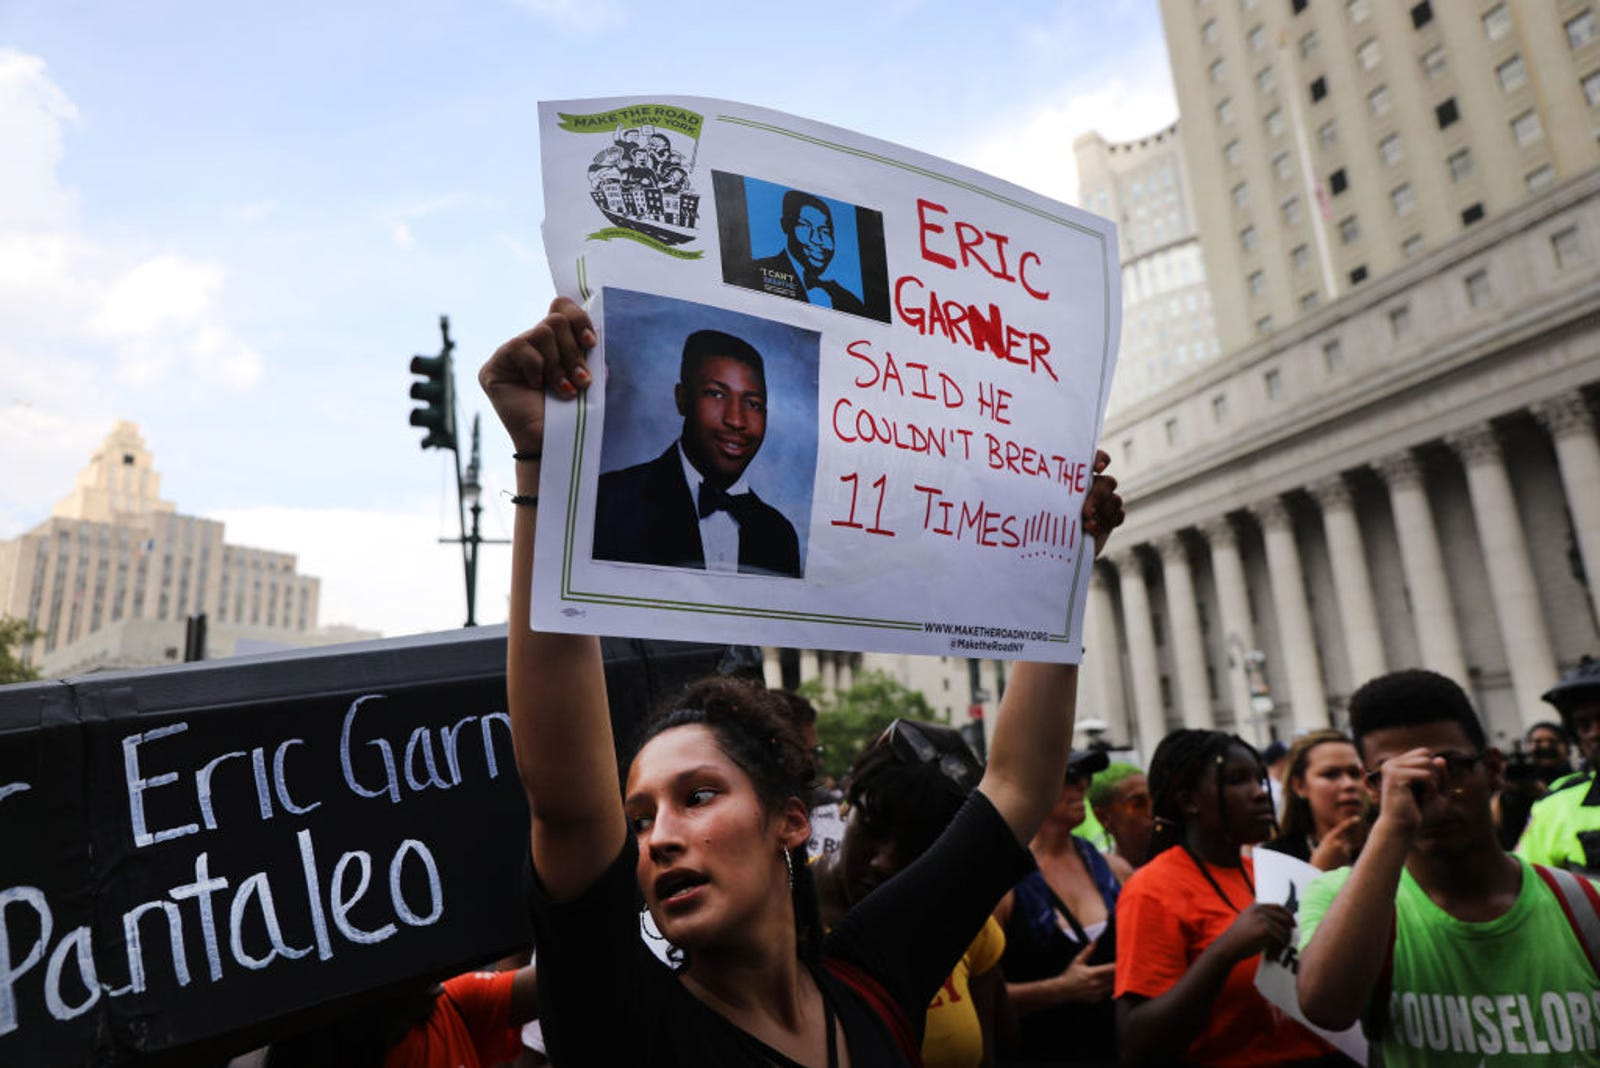 Cop who killed Eric Gardner suspended